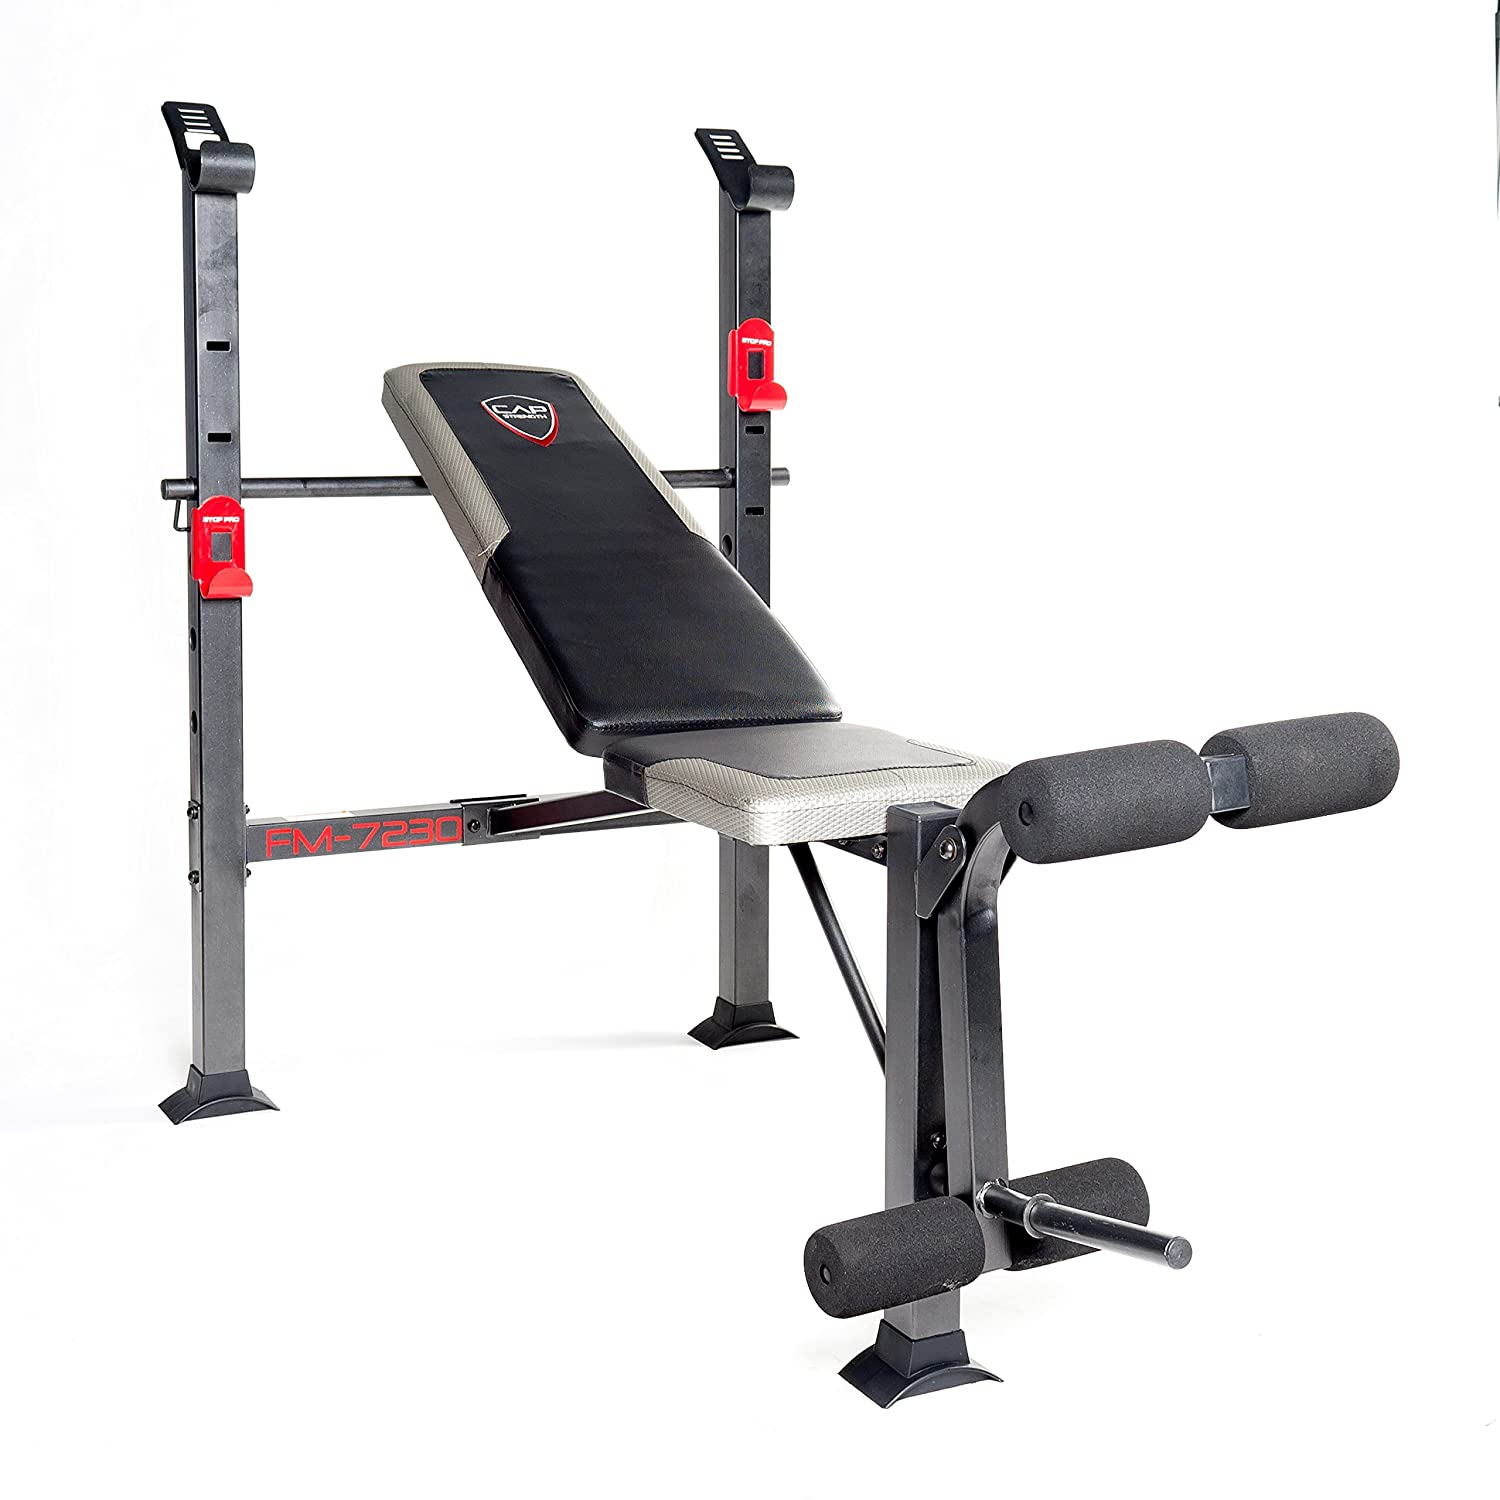 bar weight from marcy adjustable with amazon bench com developer dp the manufacturer leg olympic